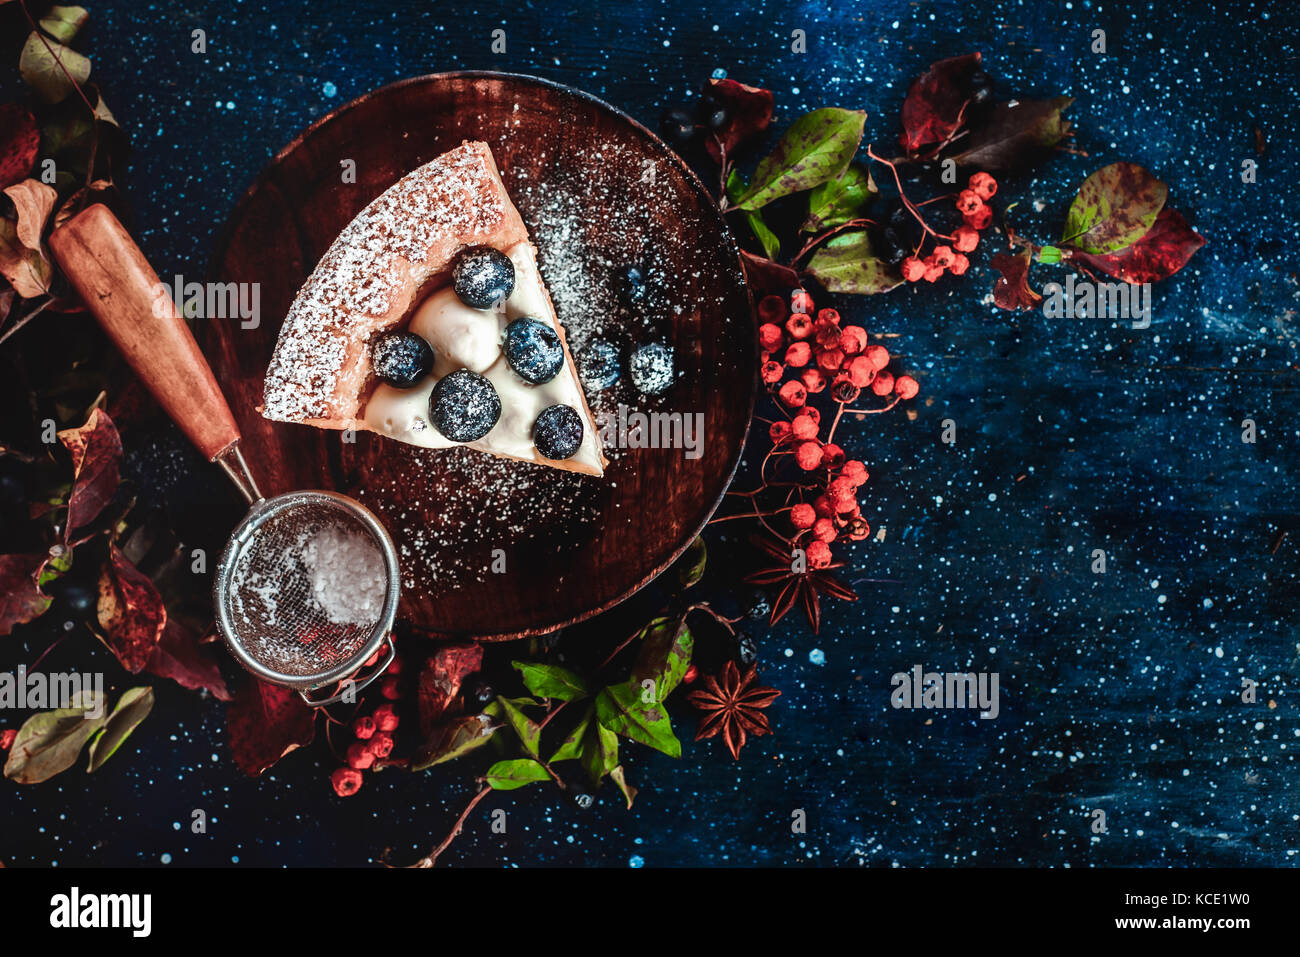 Close-up of a piece of pumpkin pie with powdered sugar and a strainer on a wooden plates. Handmade dishes in autumn - Stock Image